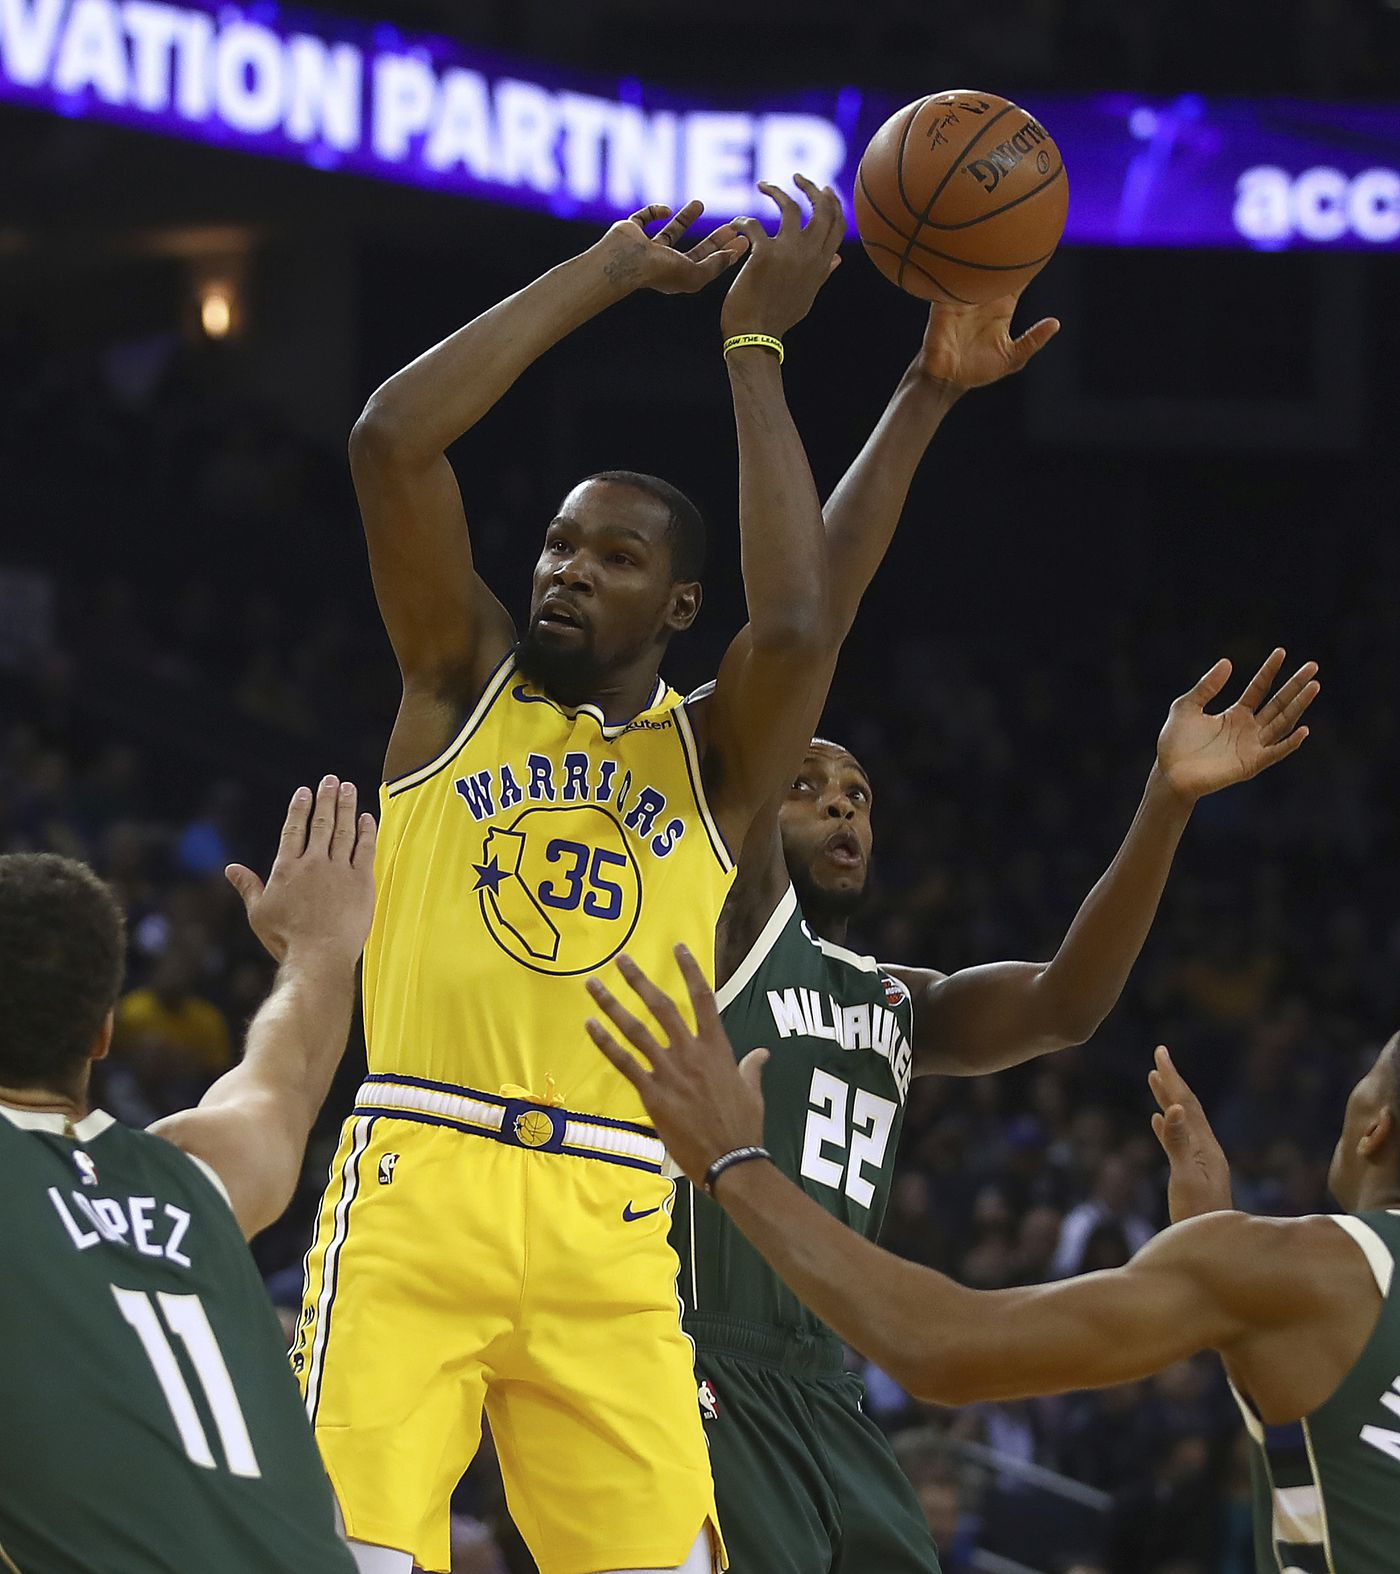 Milwaukee Bucks' Khris Middleton (22) steals the ball from Golden State Warriors' Kevin Durant (35) during the first half of an NBA basketball game Thursday, Nov. 8, 2018, in Oakland, Calif. (AP Photo/Ben Margot)